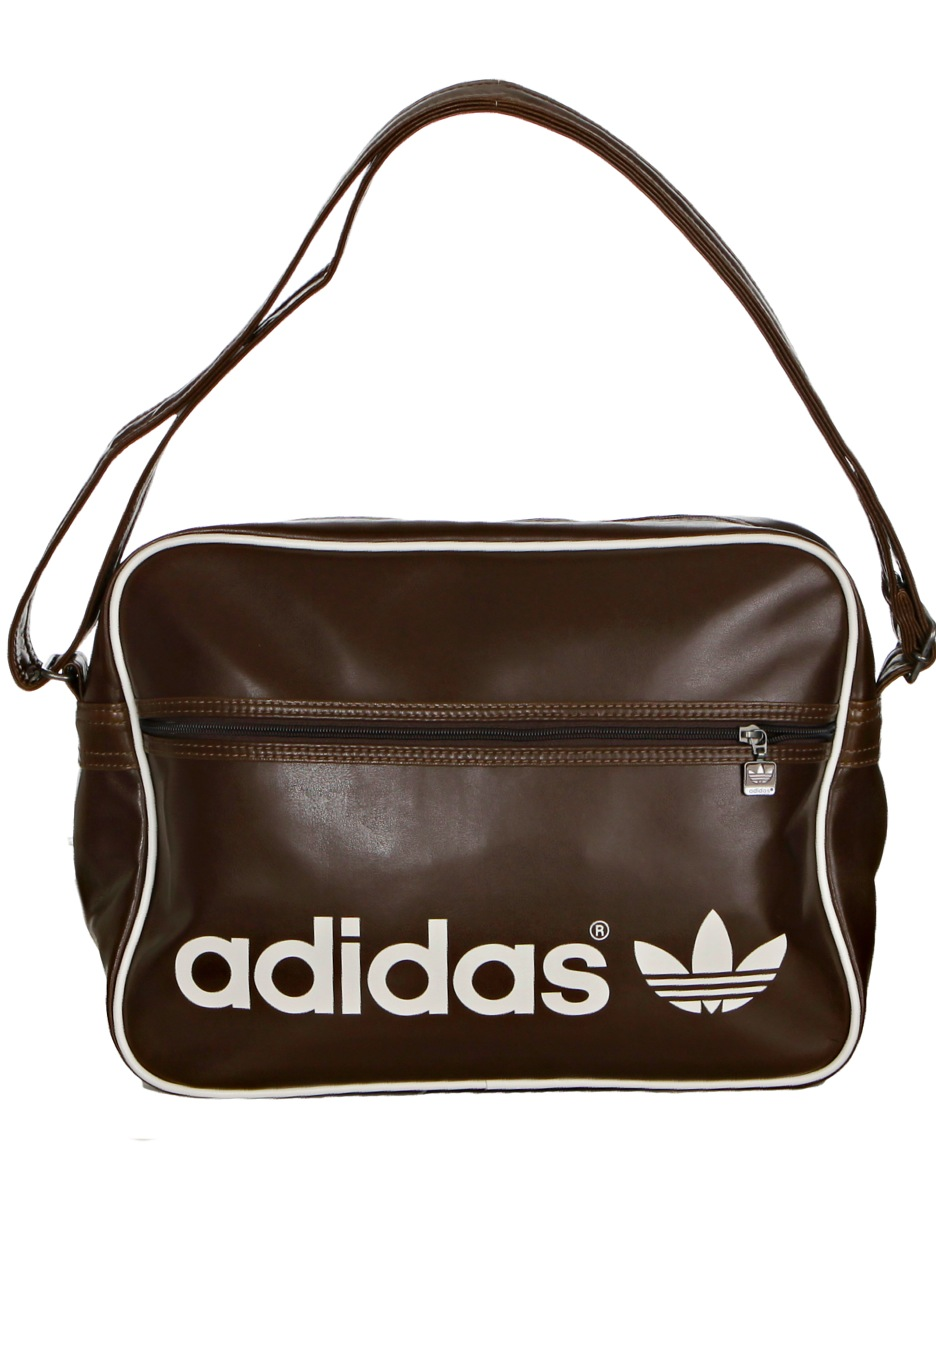 37aa0faa49 Adidas - Airline Brown Spice Running White - Bag - Streetwear Shop -  Impericon.com UK